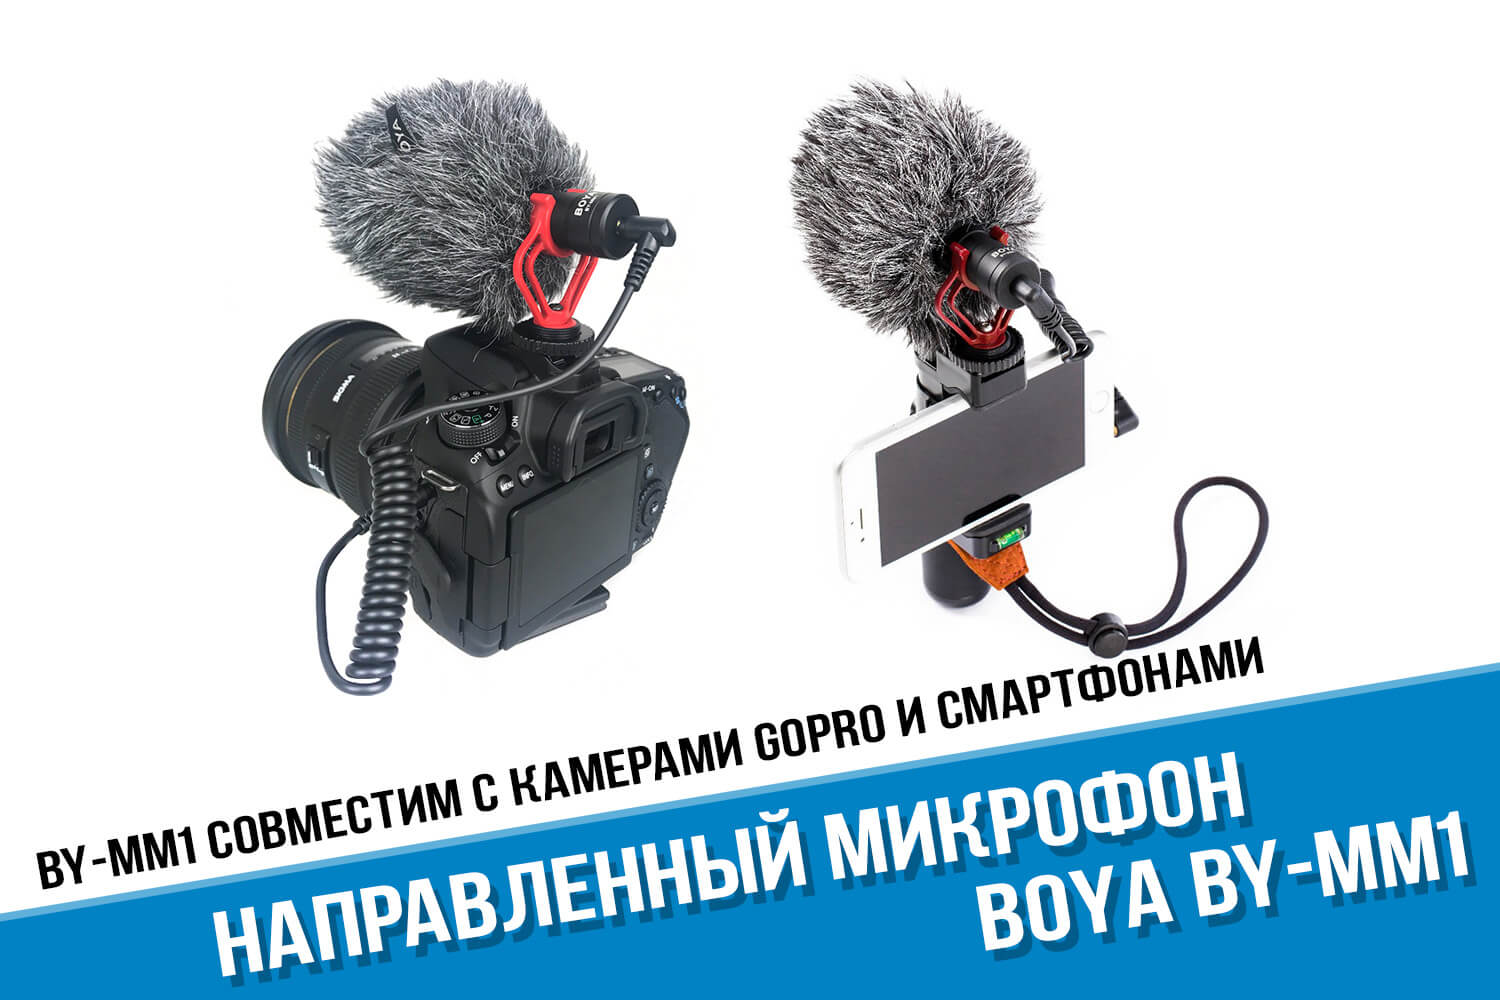 Пример установки направленного микрофона Boya BY-MM1